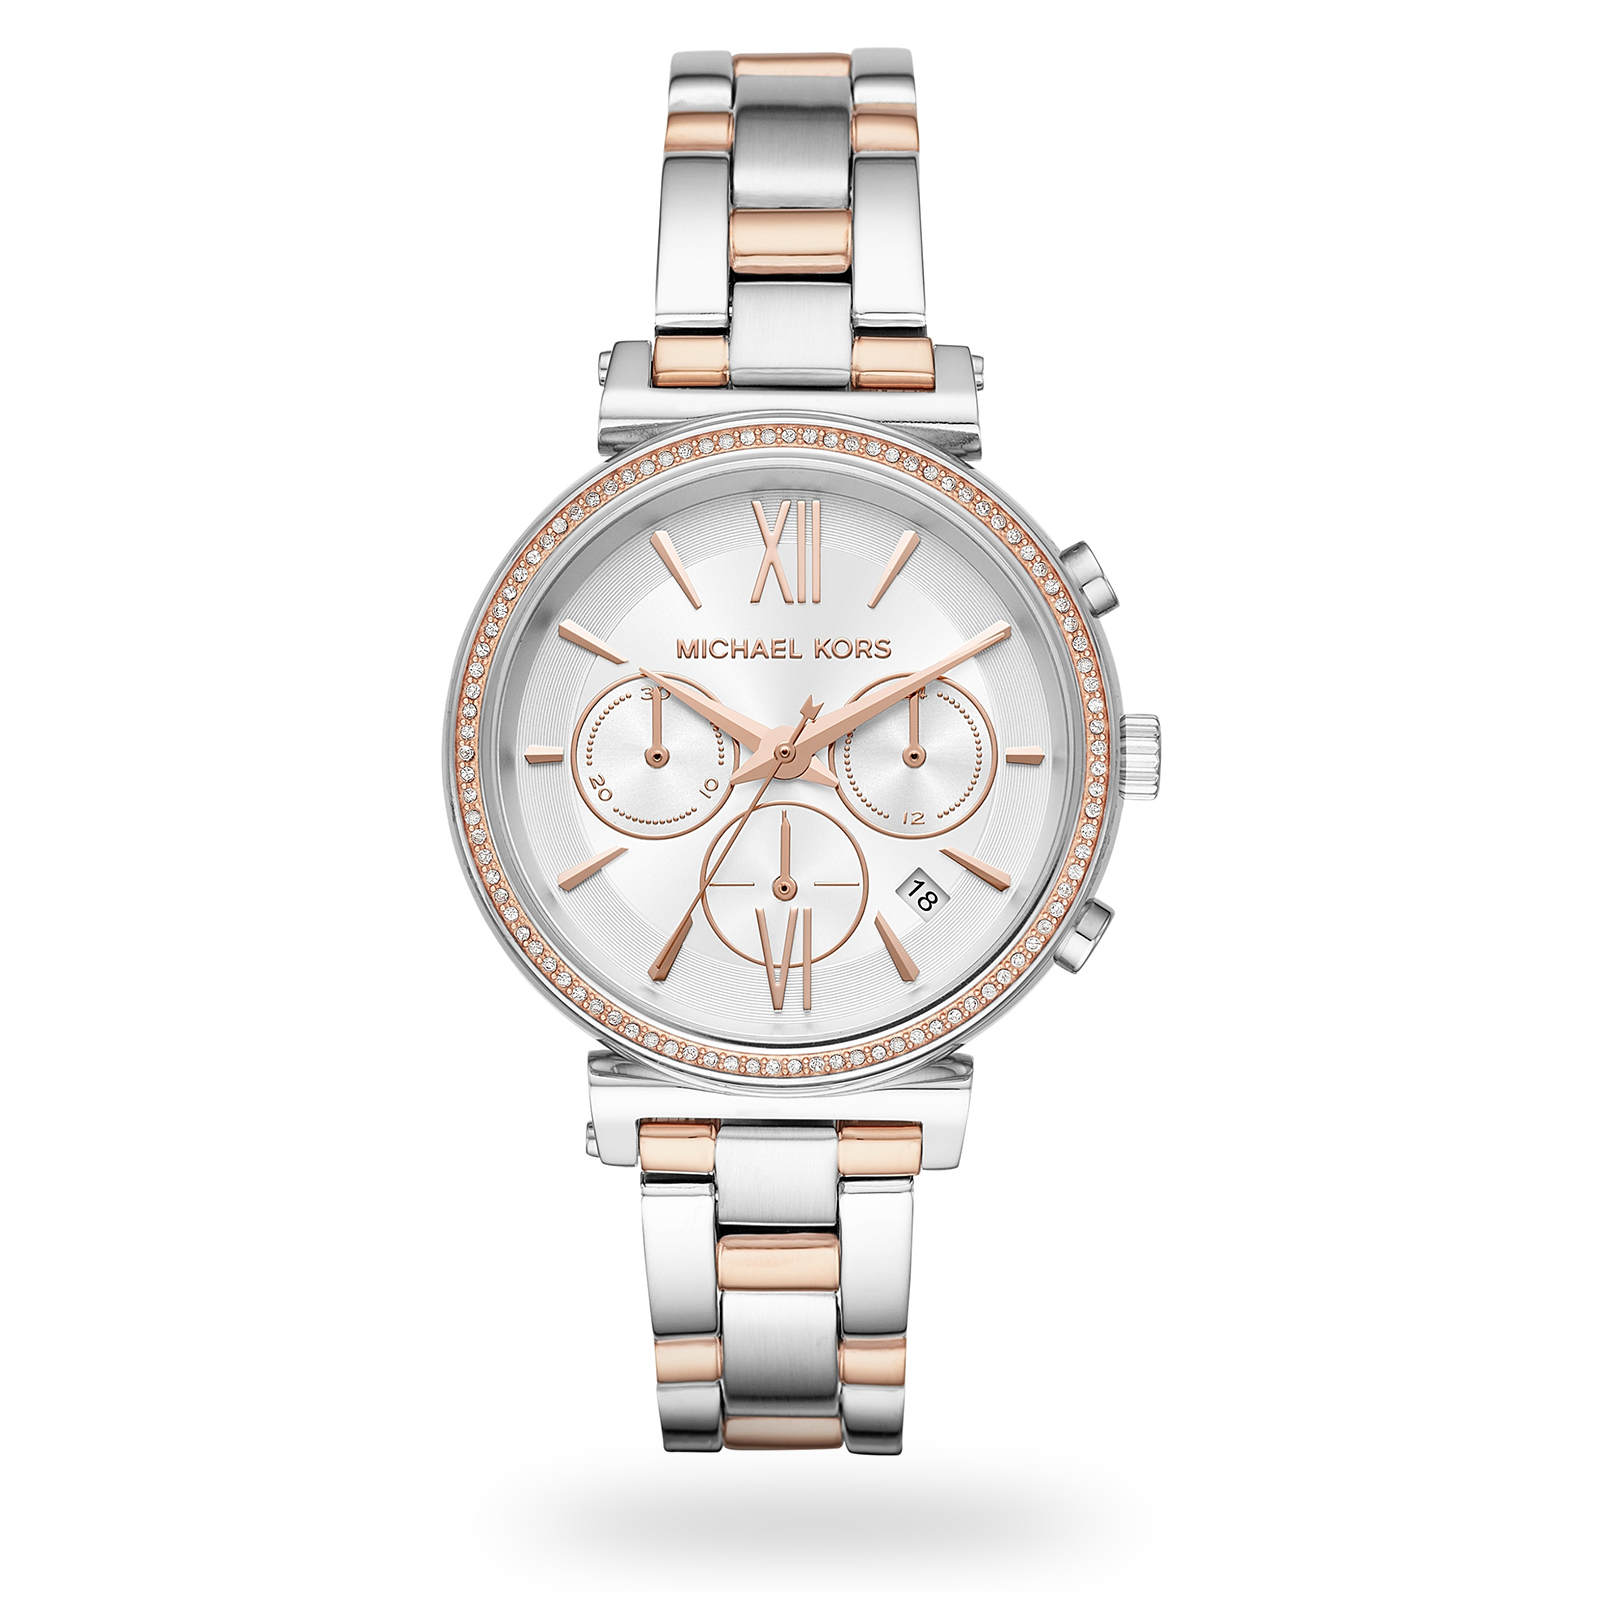 Michael Kors Sofie Ladies Watch MK6558